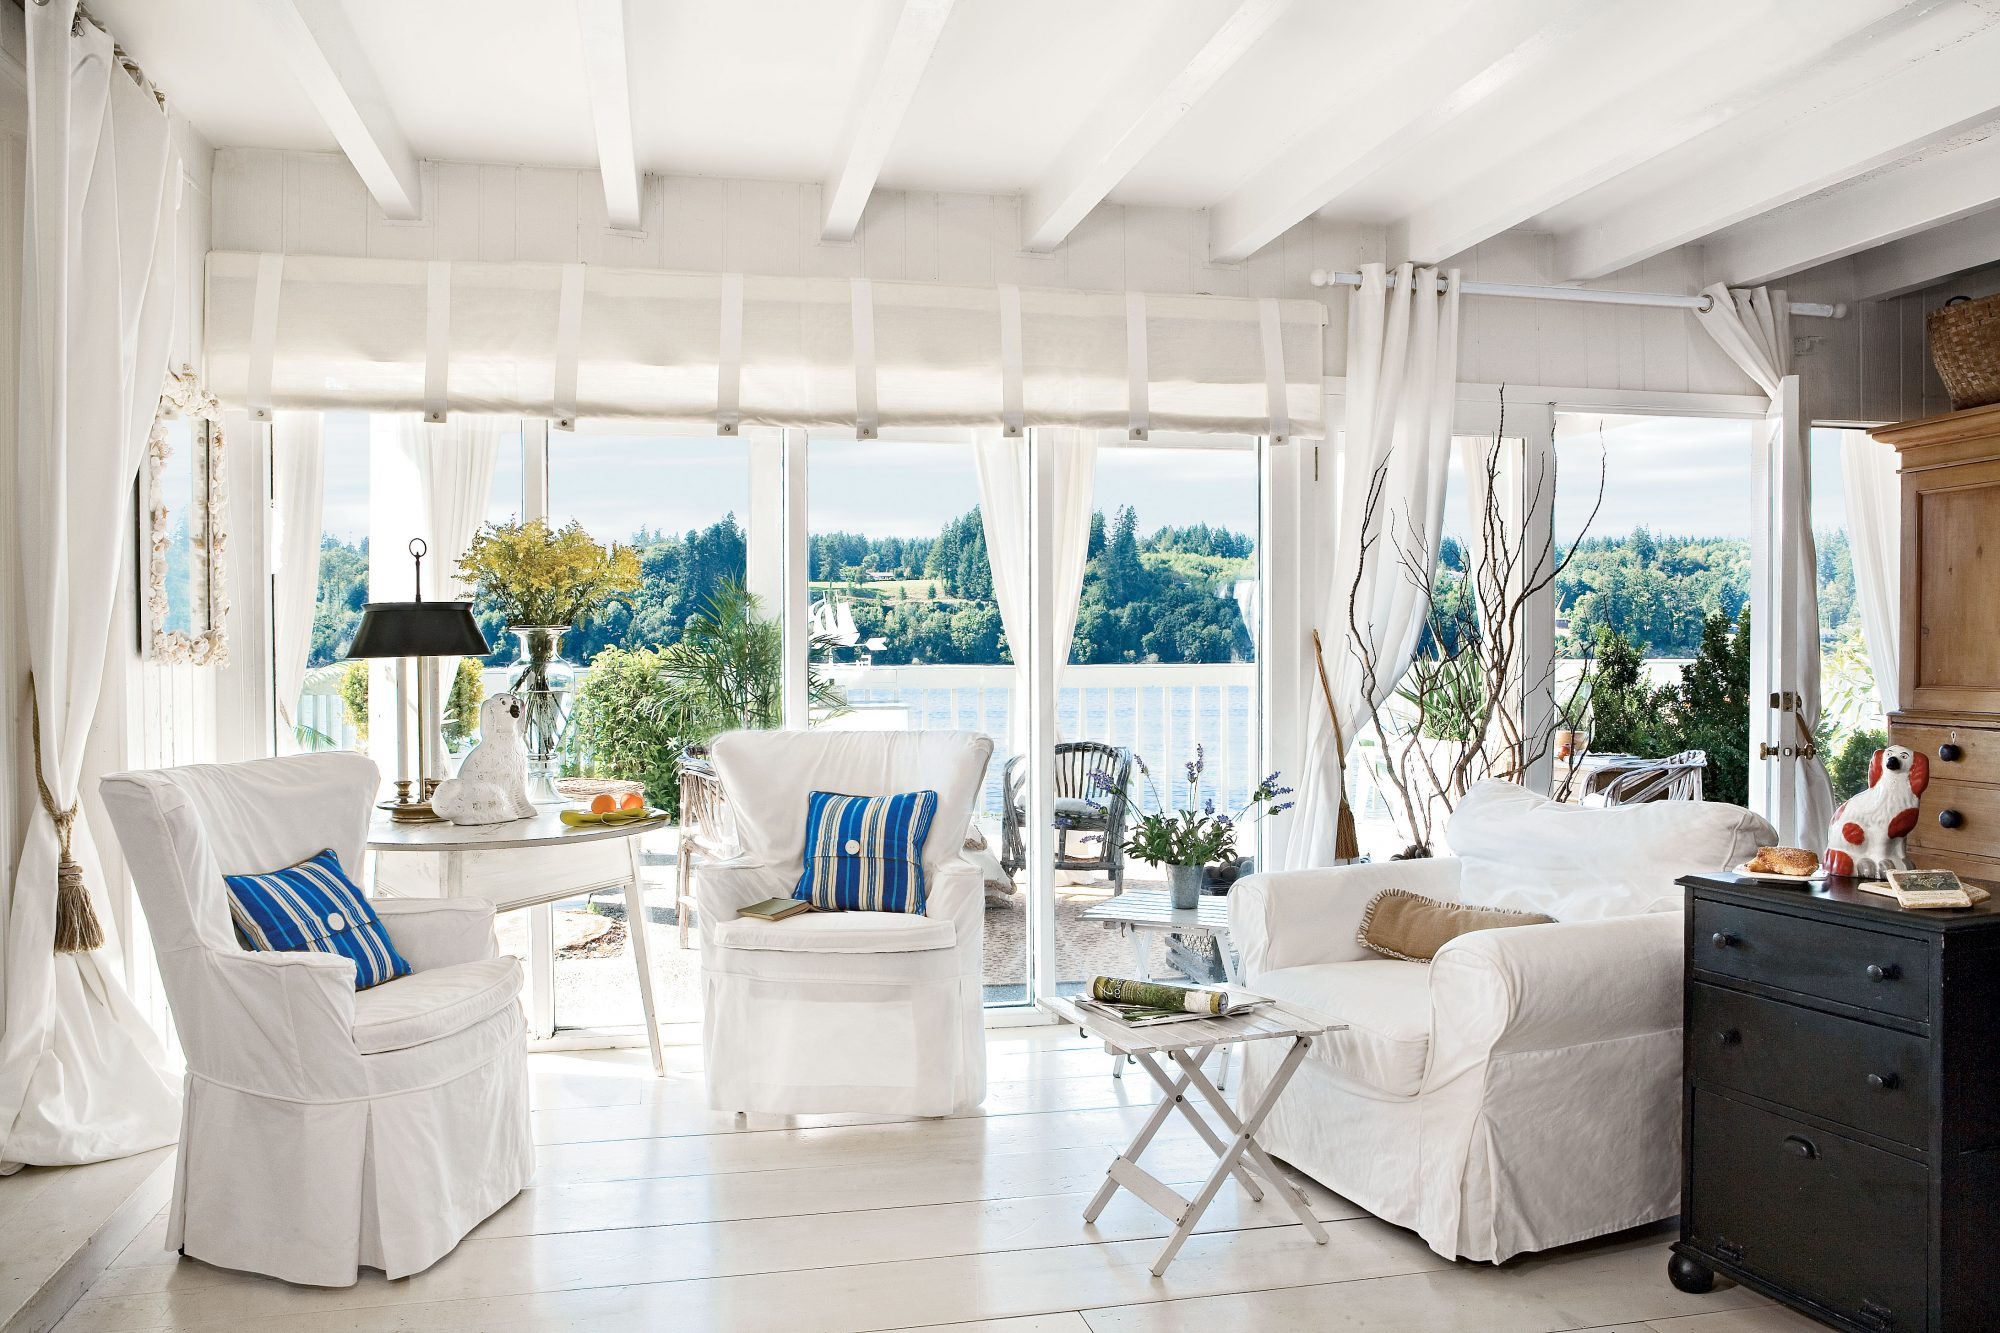 To keep things simple in her living room—as to not distract from the gorgeous view—the homeowner used easy-to-wash white slipcovers and hung white linen or cotton draperies and shades on doorways and windows. A little splash of blue from the throw pillows is the only color used.